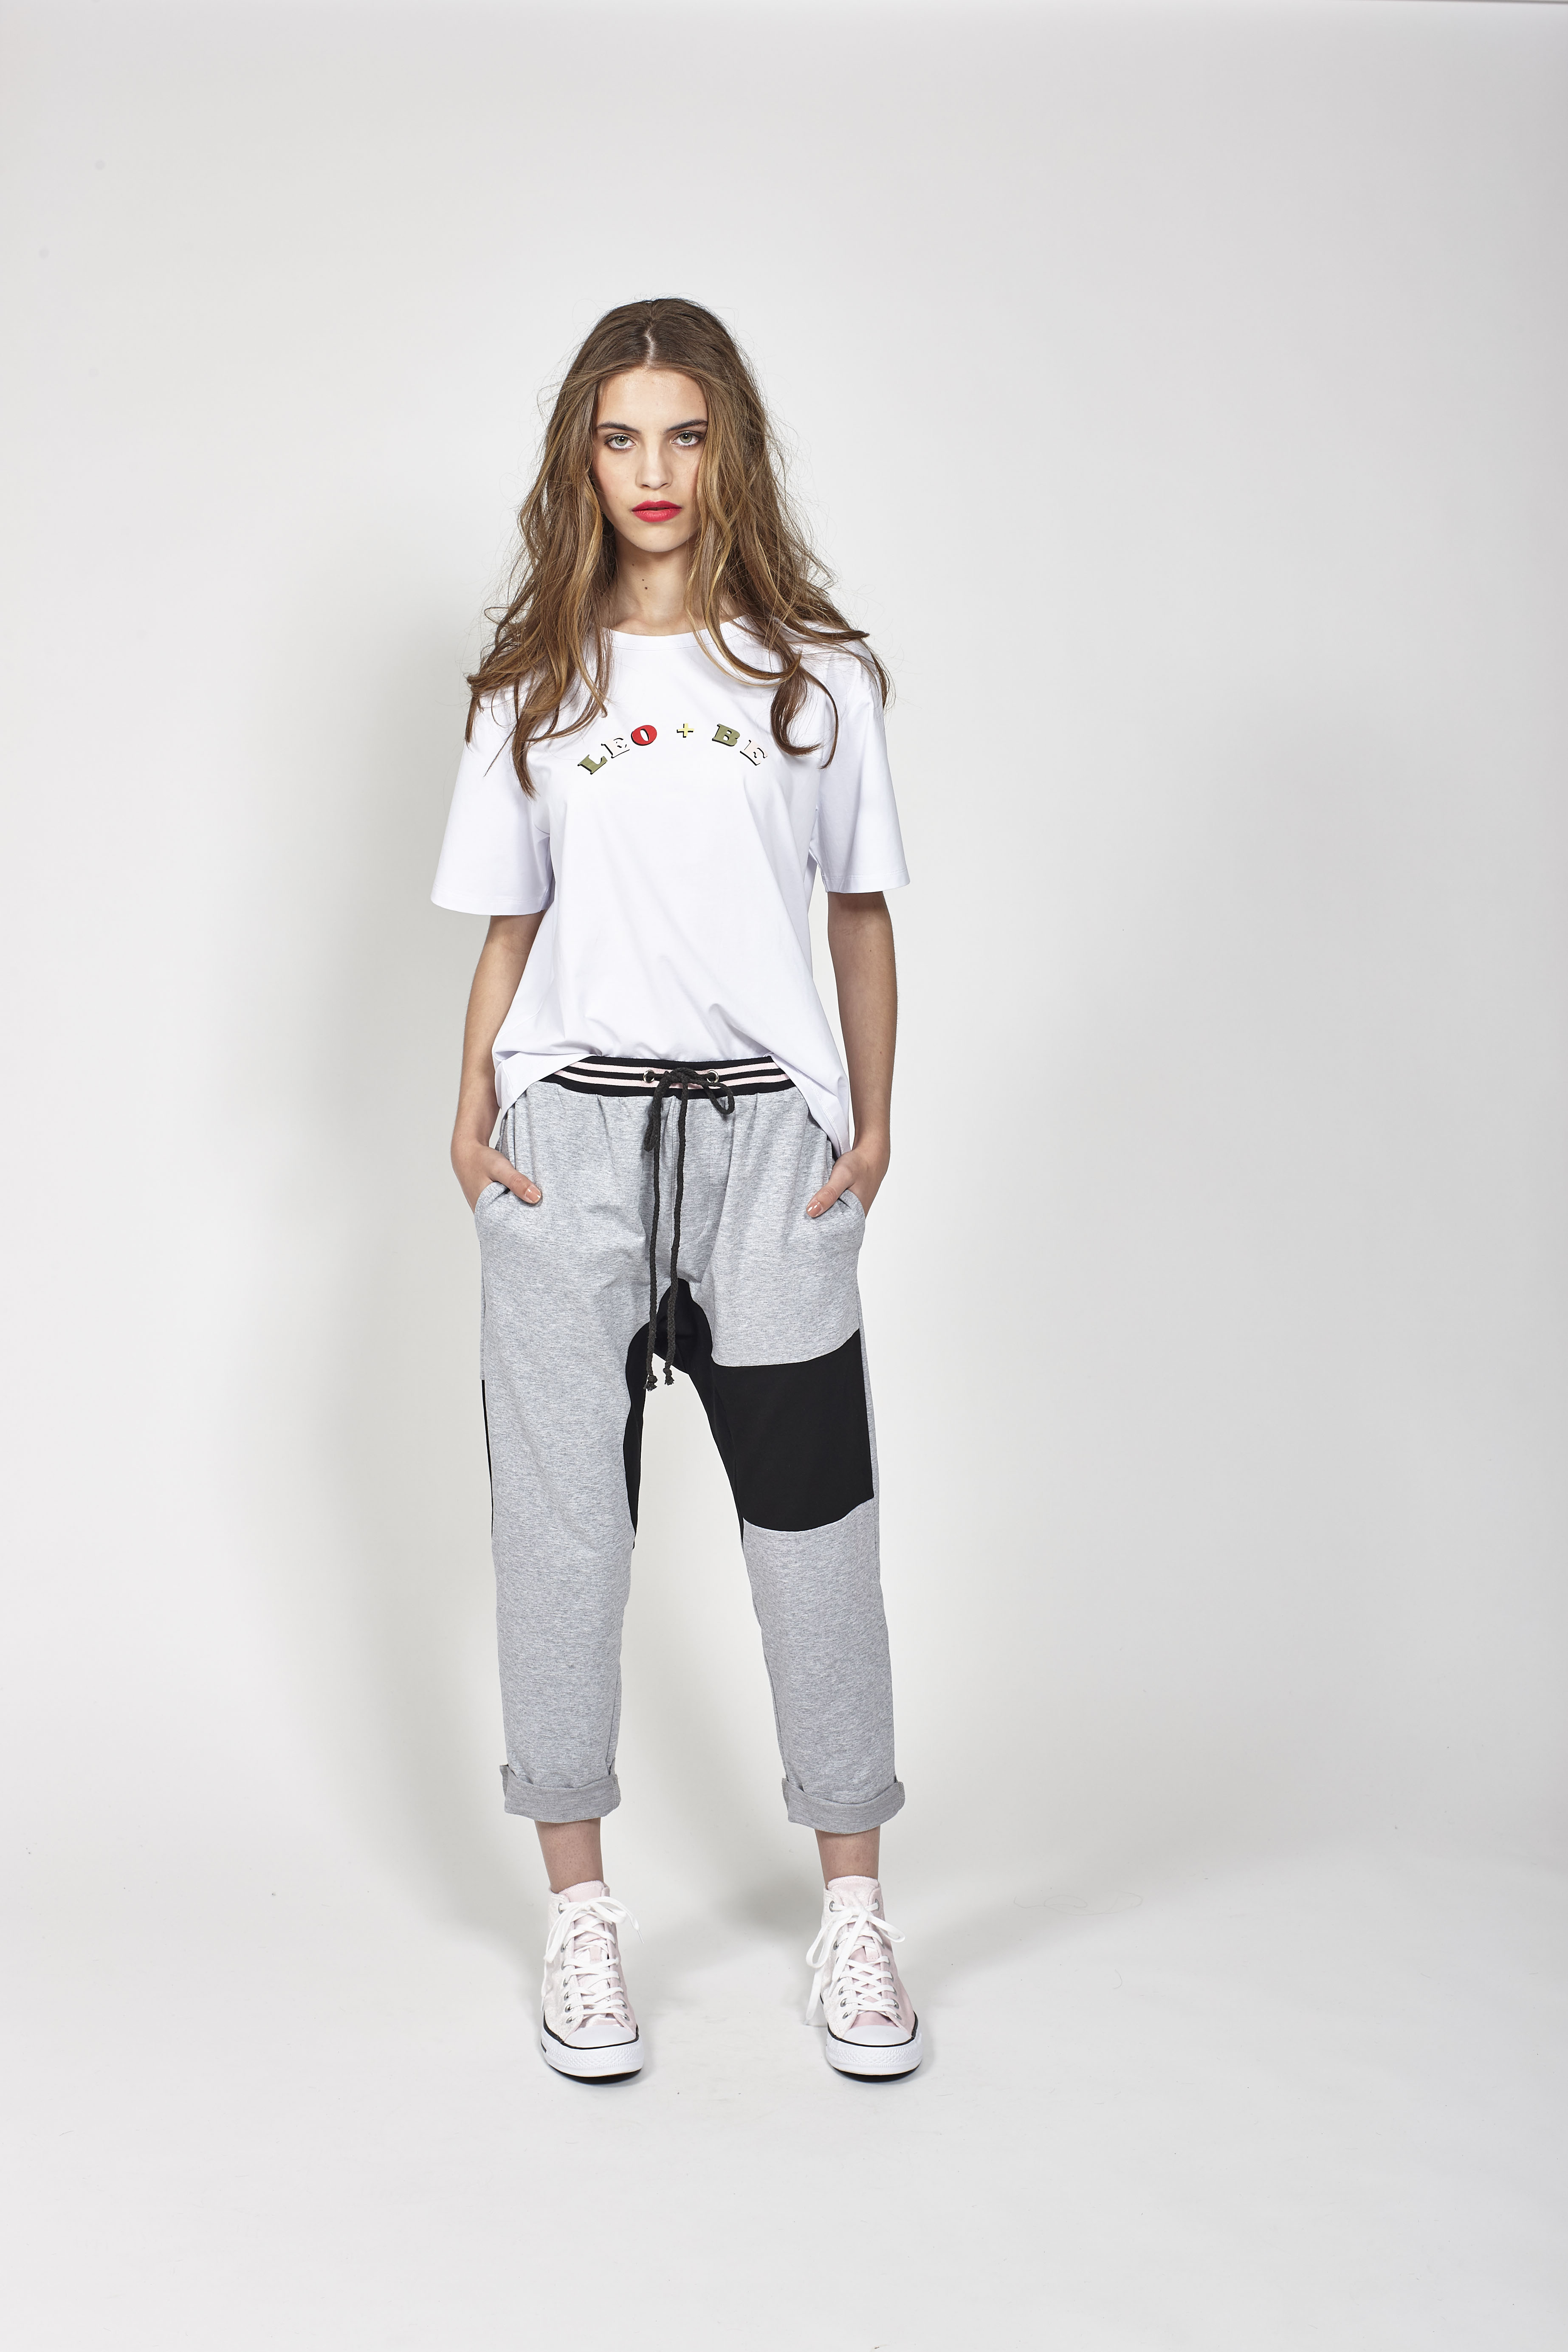 LB1070 LEO+BE Wonderful Tee, RRP$98.00 and LB1066 LEO+BE Paradise Sweatpant, RRP$159.00